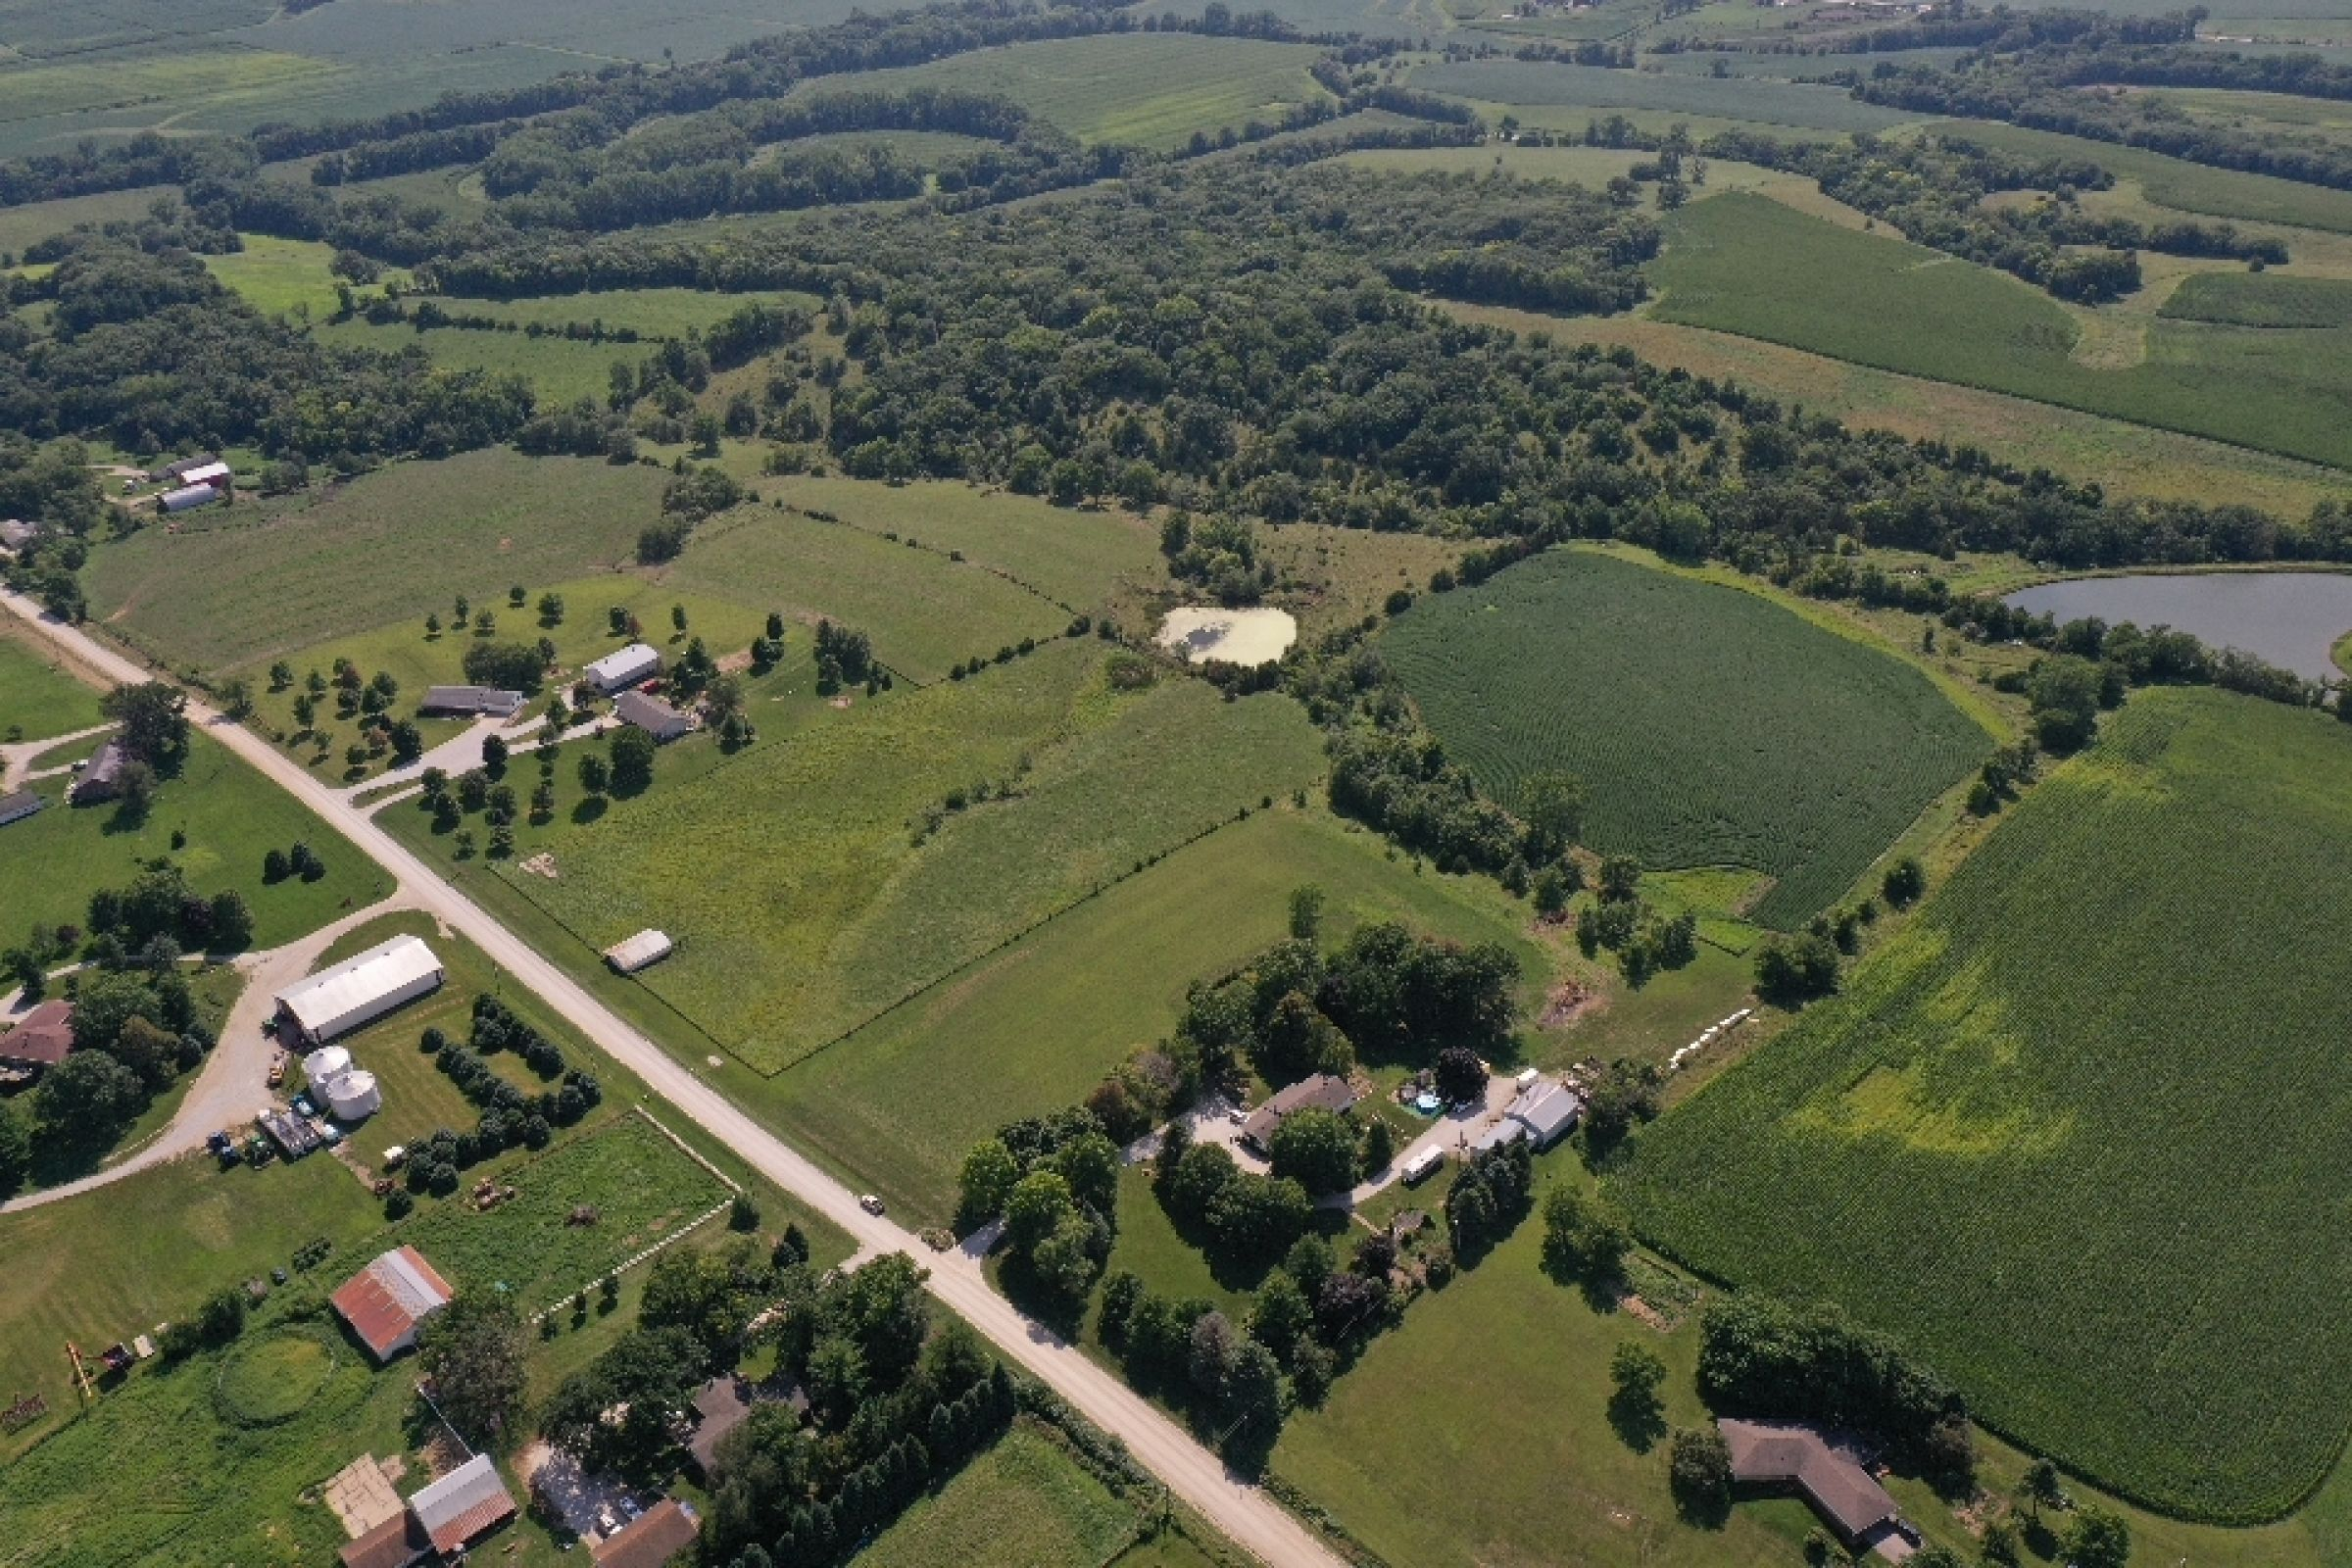 residential-land-warren-county-iowa-29-acres-listing-number-15120-1-2020-08-20-195120.jpg